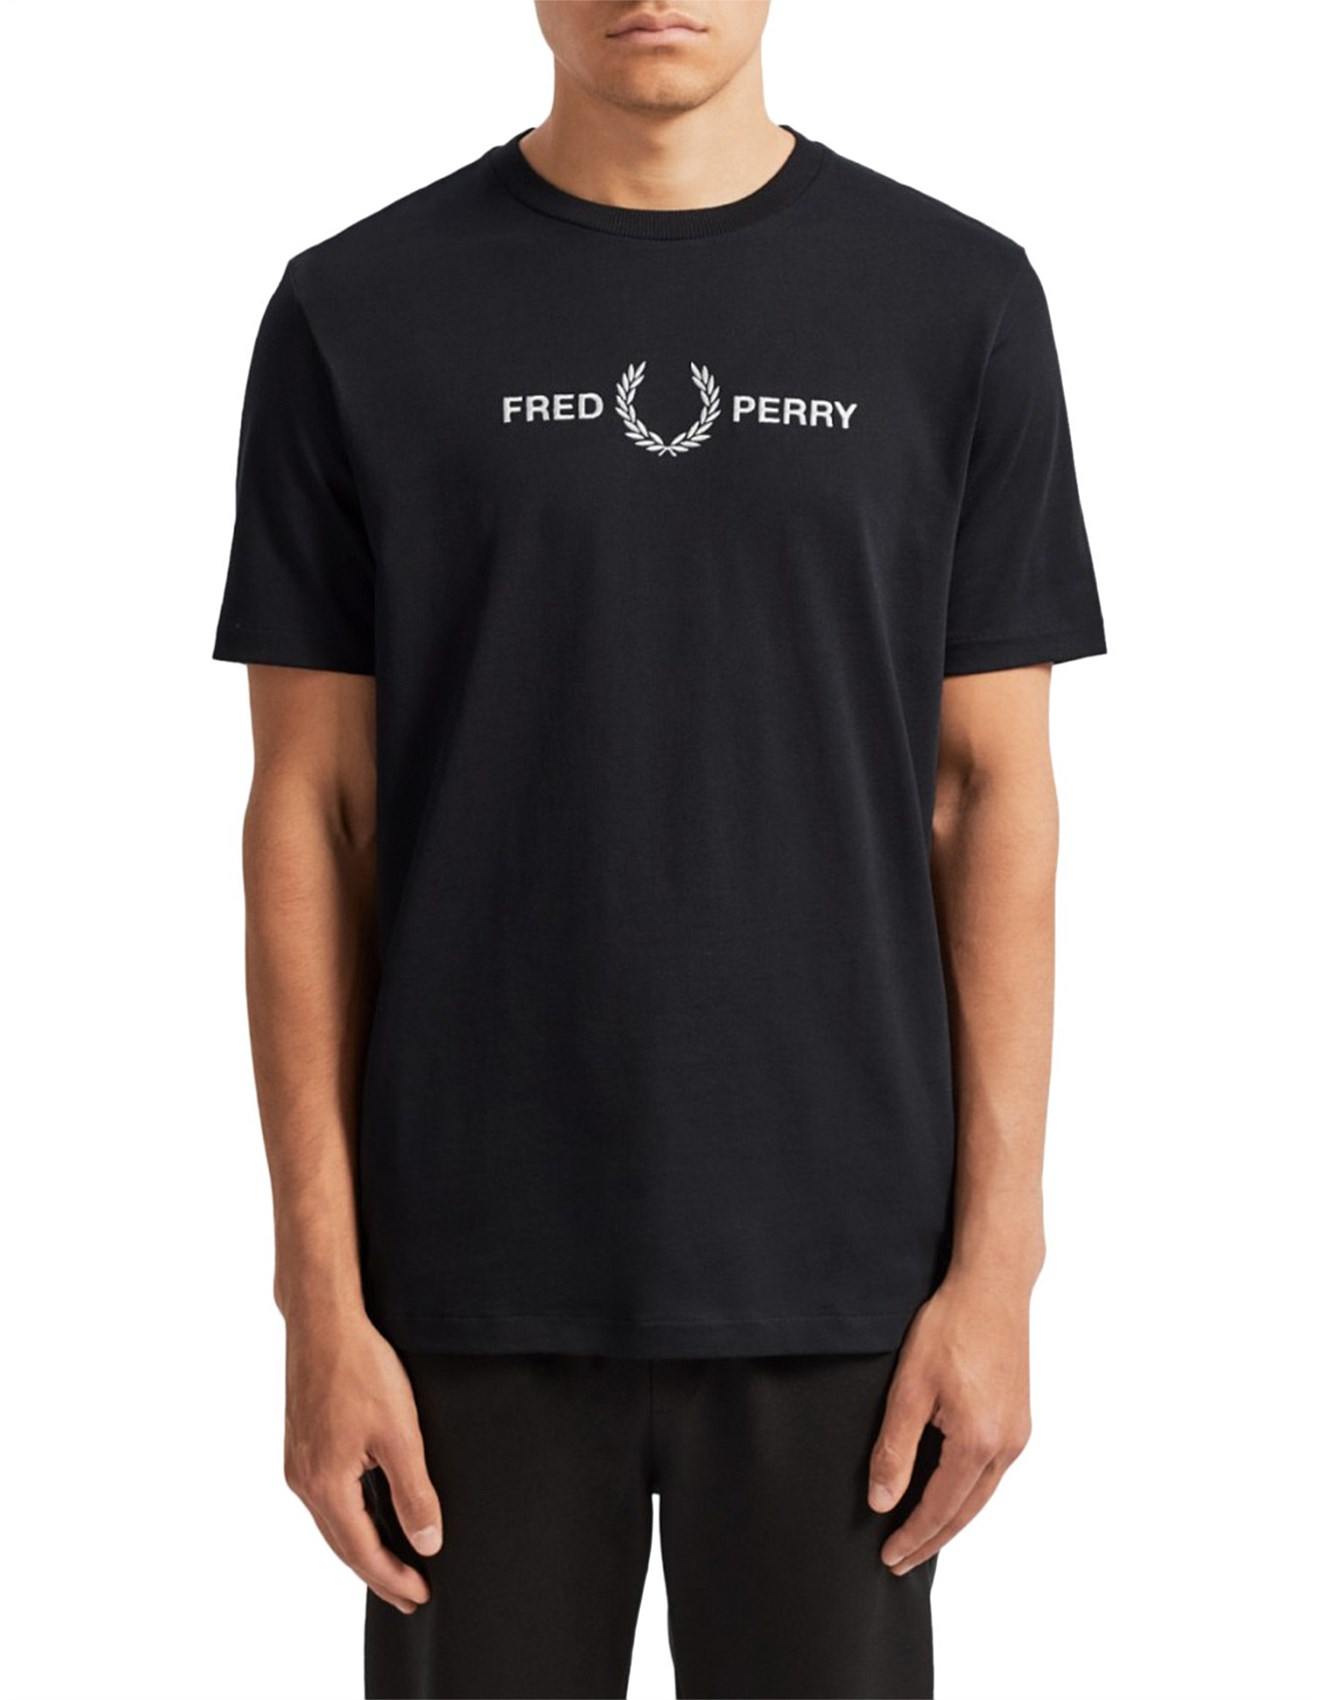 Fred Perry Graphic Black T Shirt